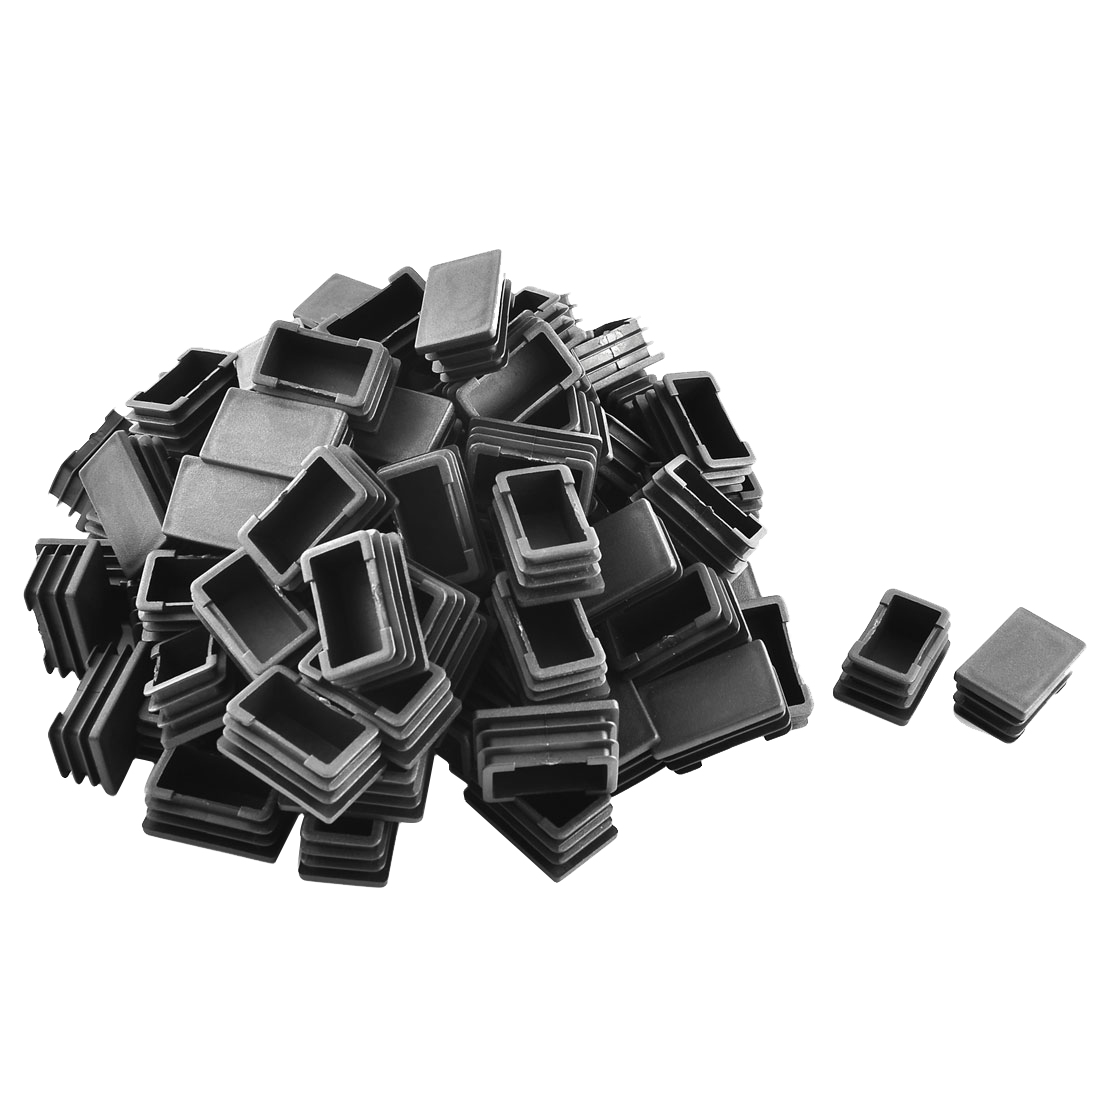 Home Plastic Rectangle Tube Inserts End Blanking Cap Black 25mm x 40mm 100 Pcs